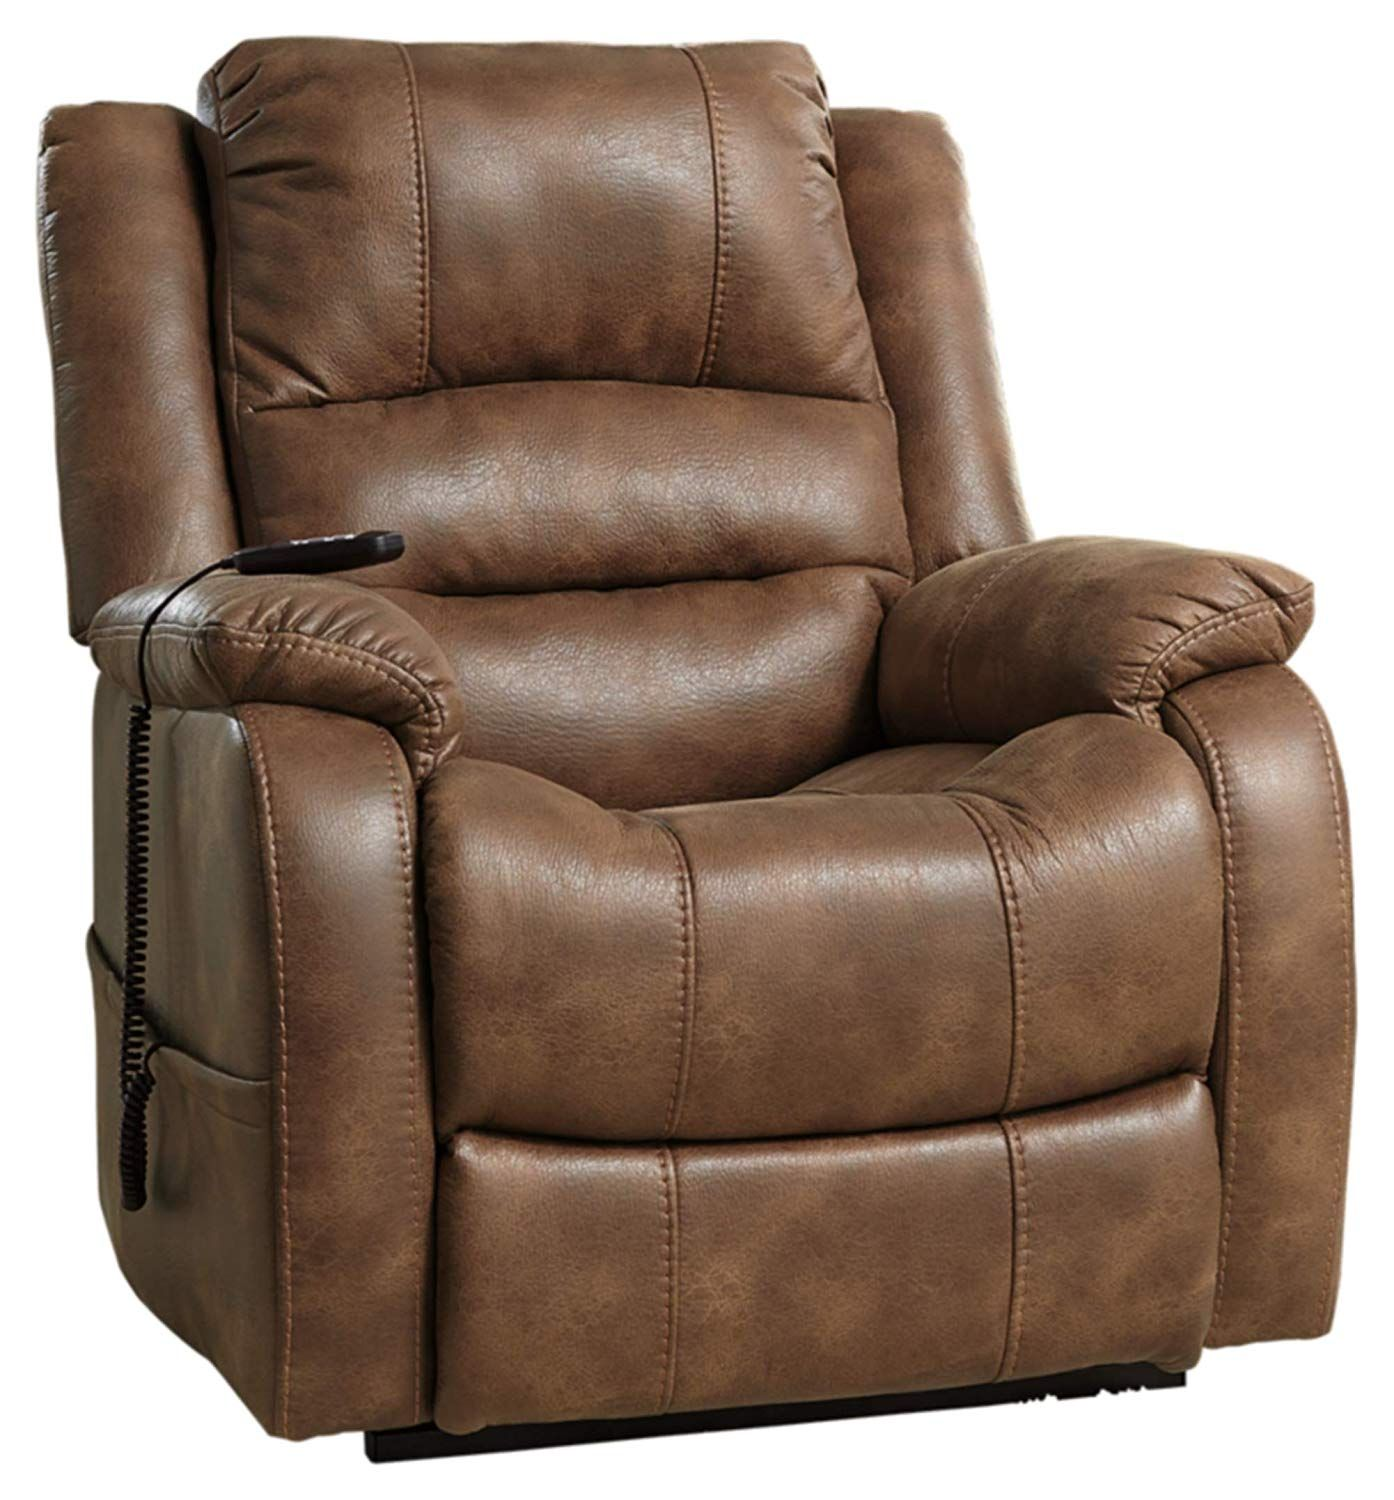 Amazing Best Recliners The Top 10 Reclining Chairs Of 2019 Caraccident5 Cool Chair Designs And Ideas Caraccident5Info